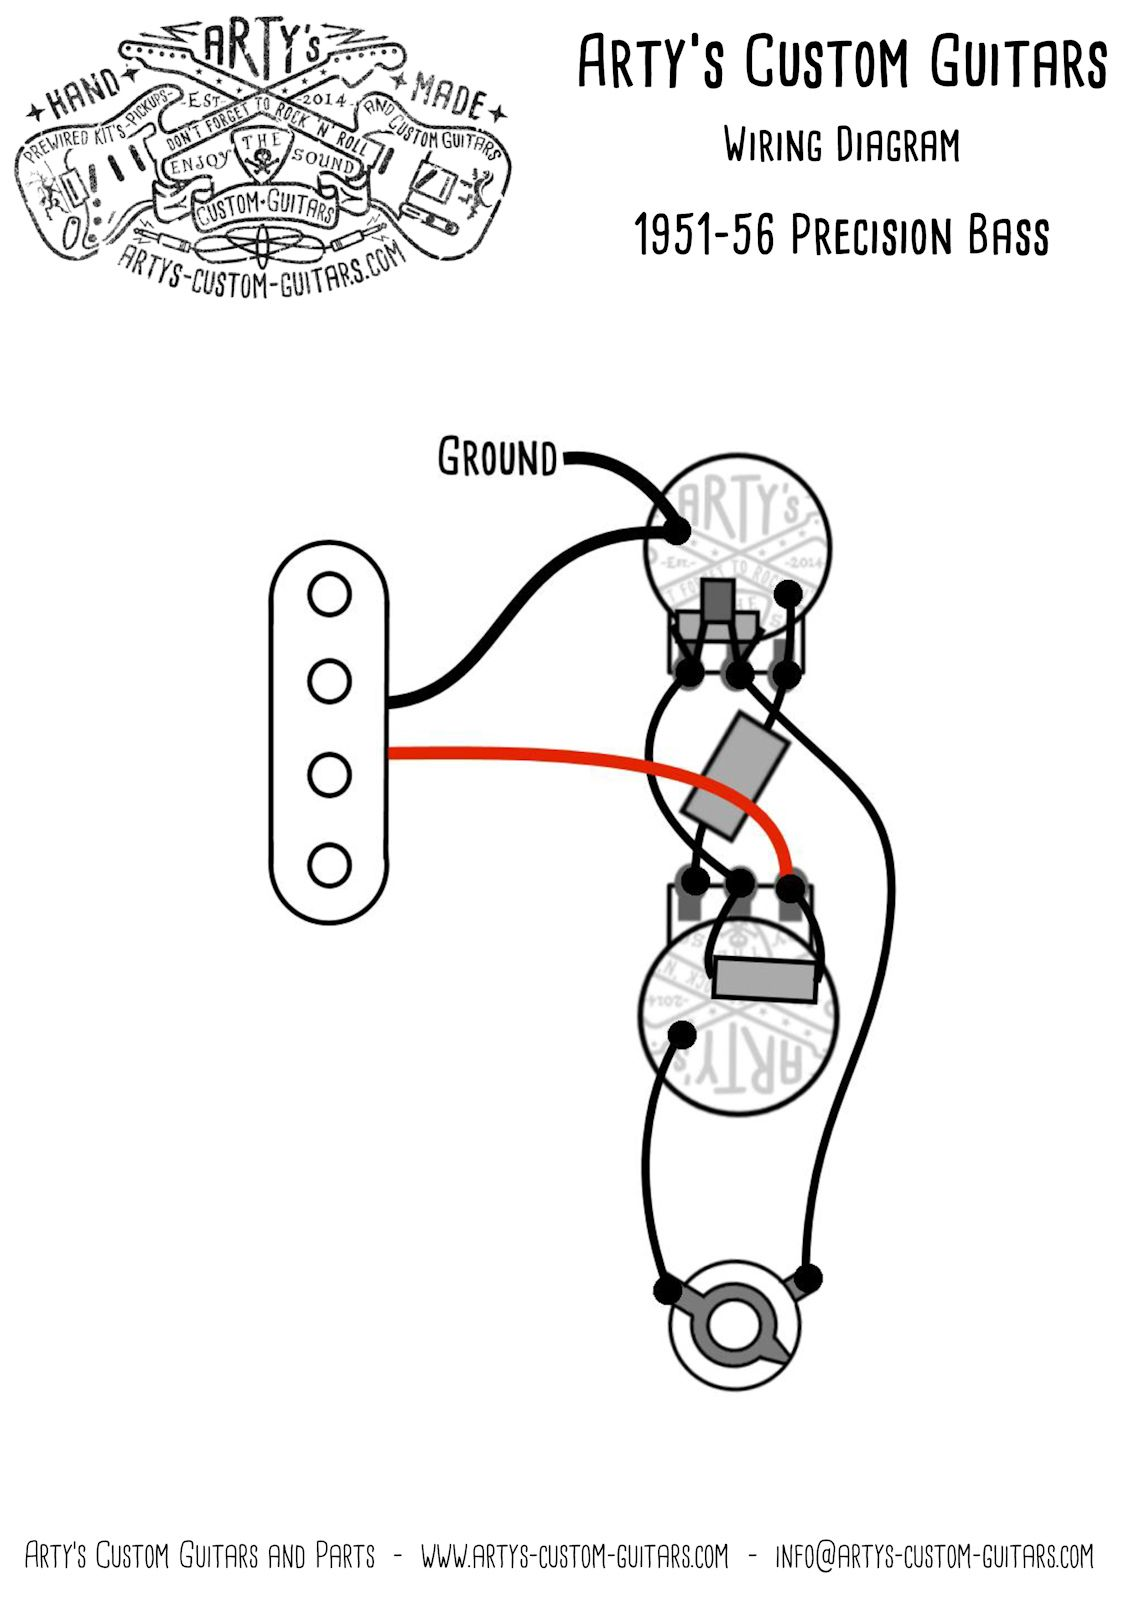 ☑ 74 Fender Jazz B Wiring Diagram HD Quality ☑ round-diagrams .twirlinglucca.itDiagram Database - Twirlinglucca.it